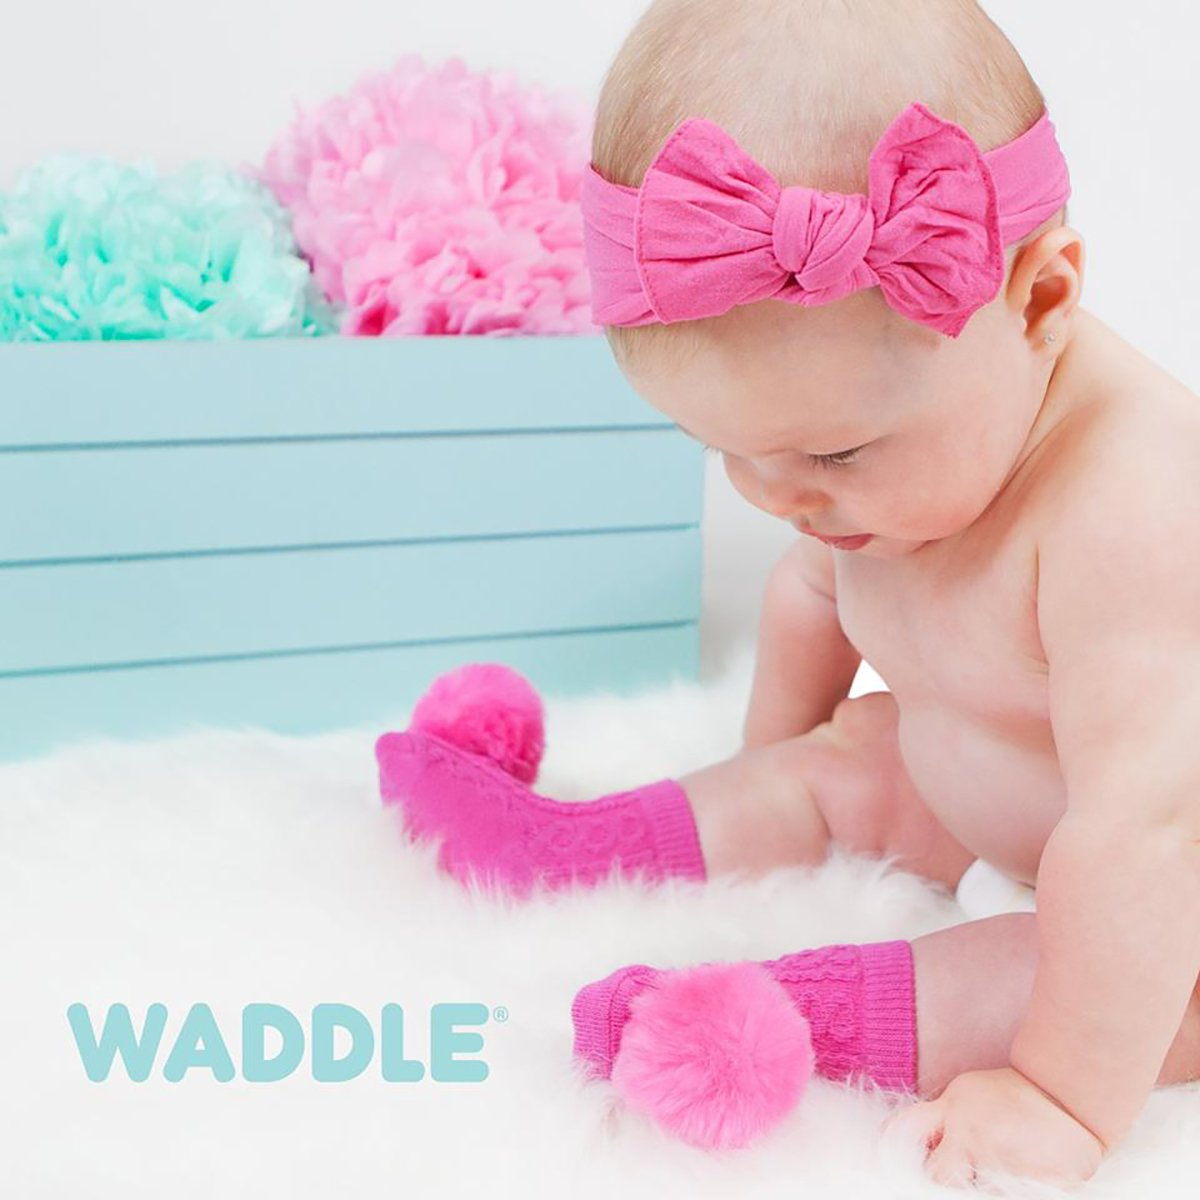 Waddle Cable Knit Pom Pom Baby Rattle Socks and Picture Frame Baby Shower Gift